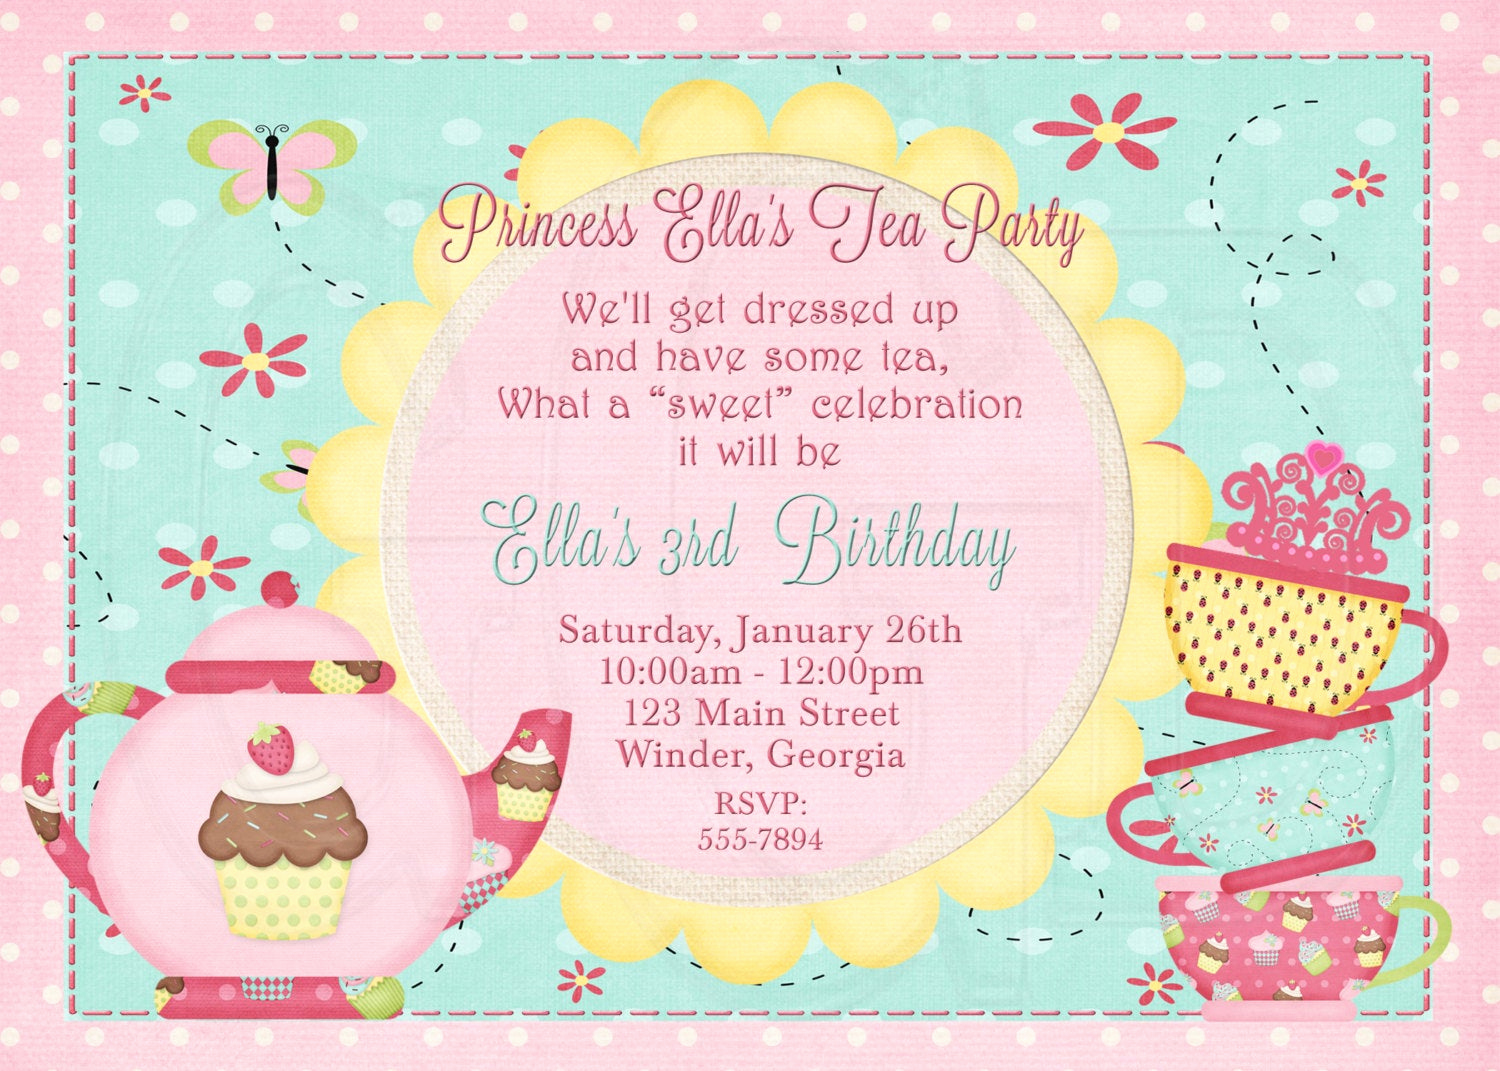 Tea Party Invitations Templates New Tea Party Invitation Birthday Dress Up Party Digital File